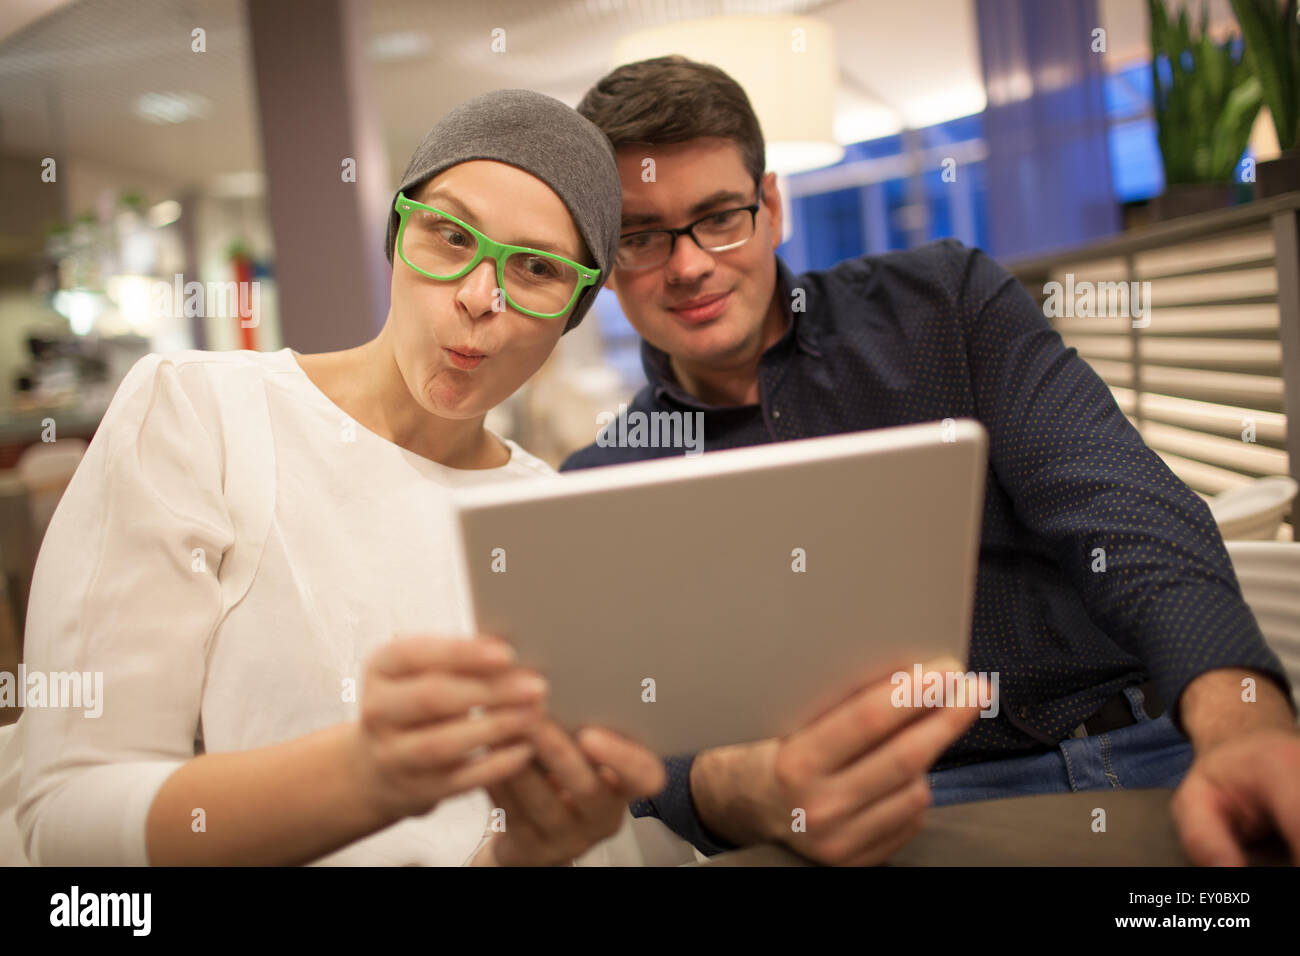 Man and woman wriggle while making selfie - Stock Image